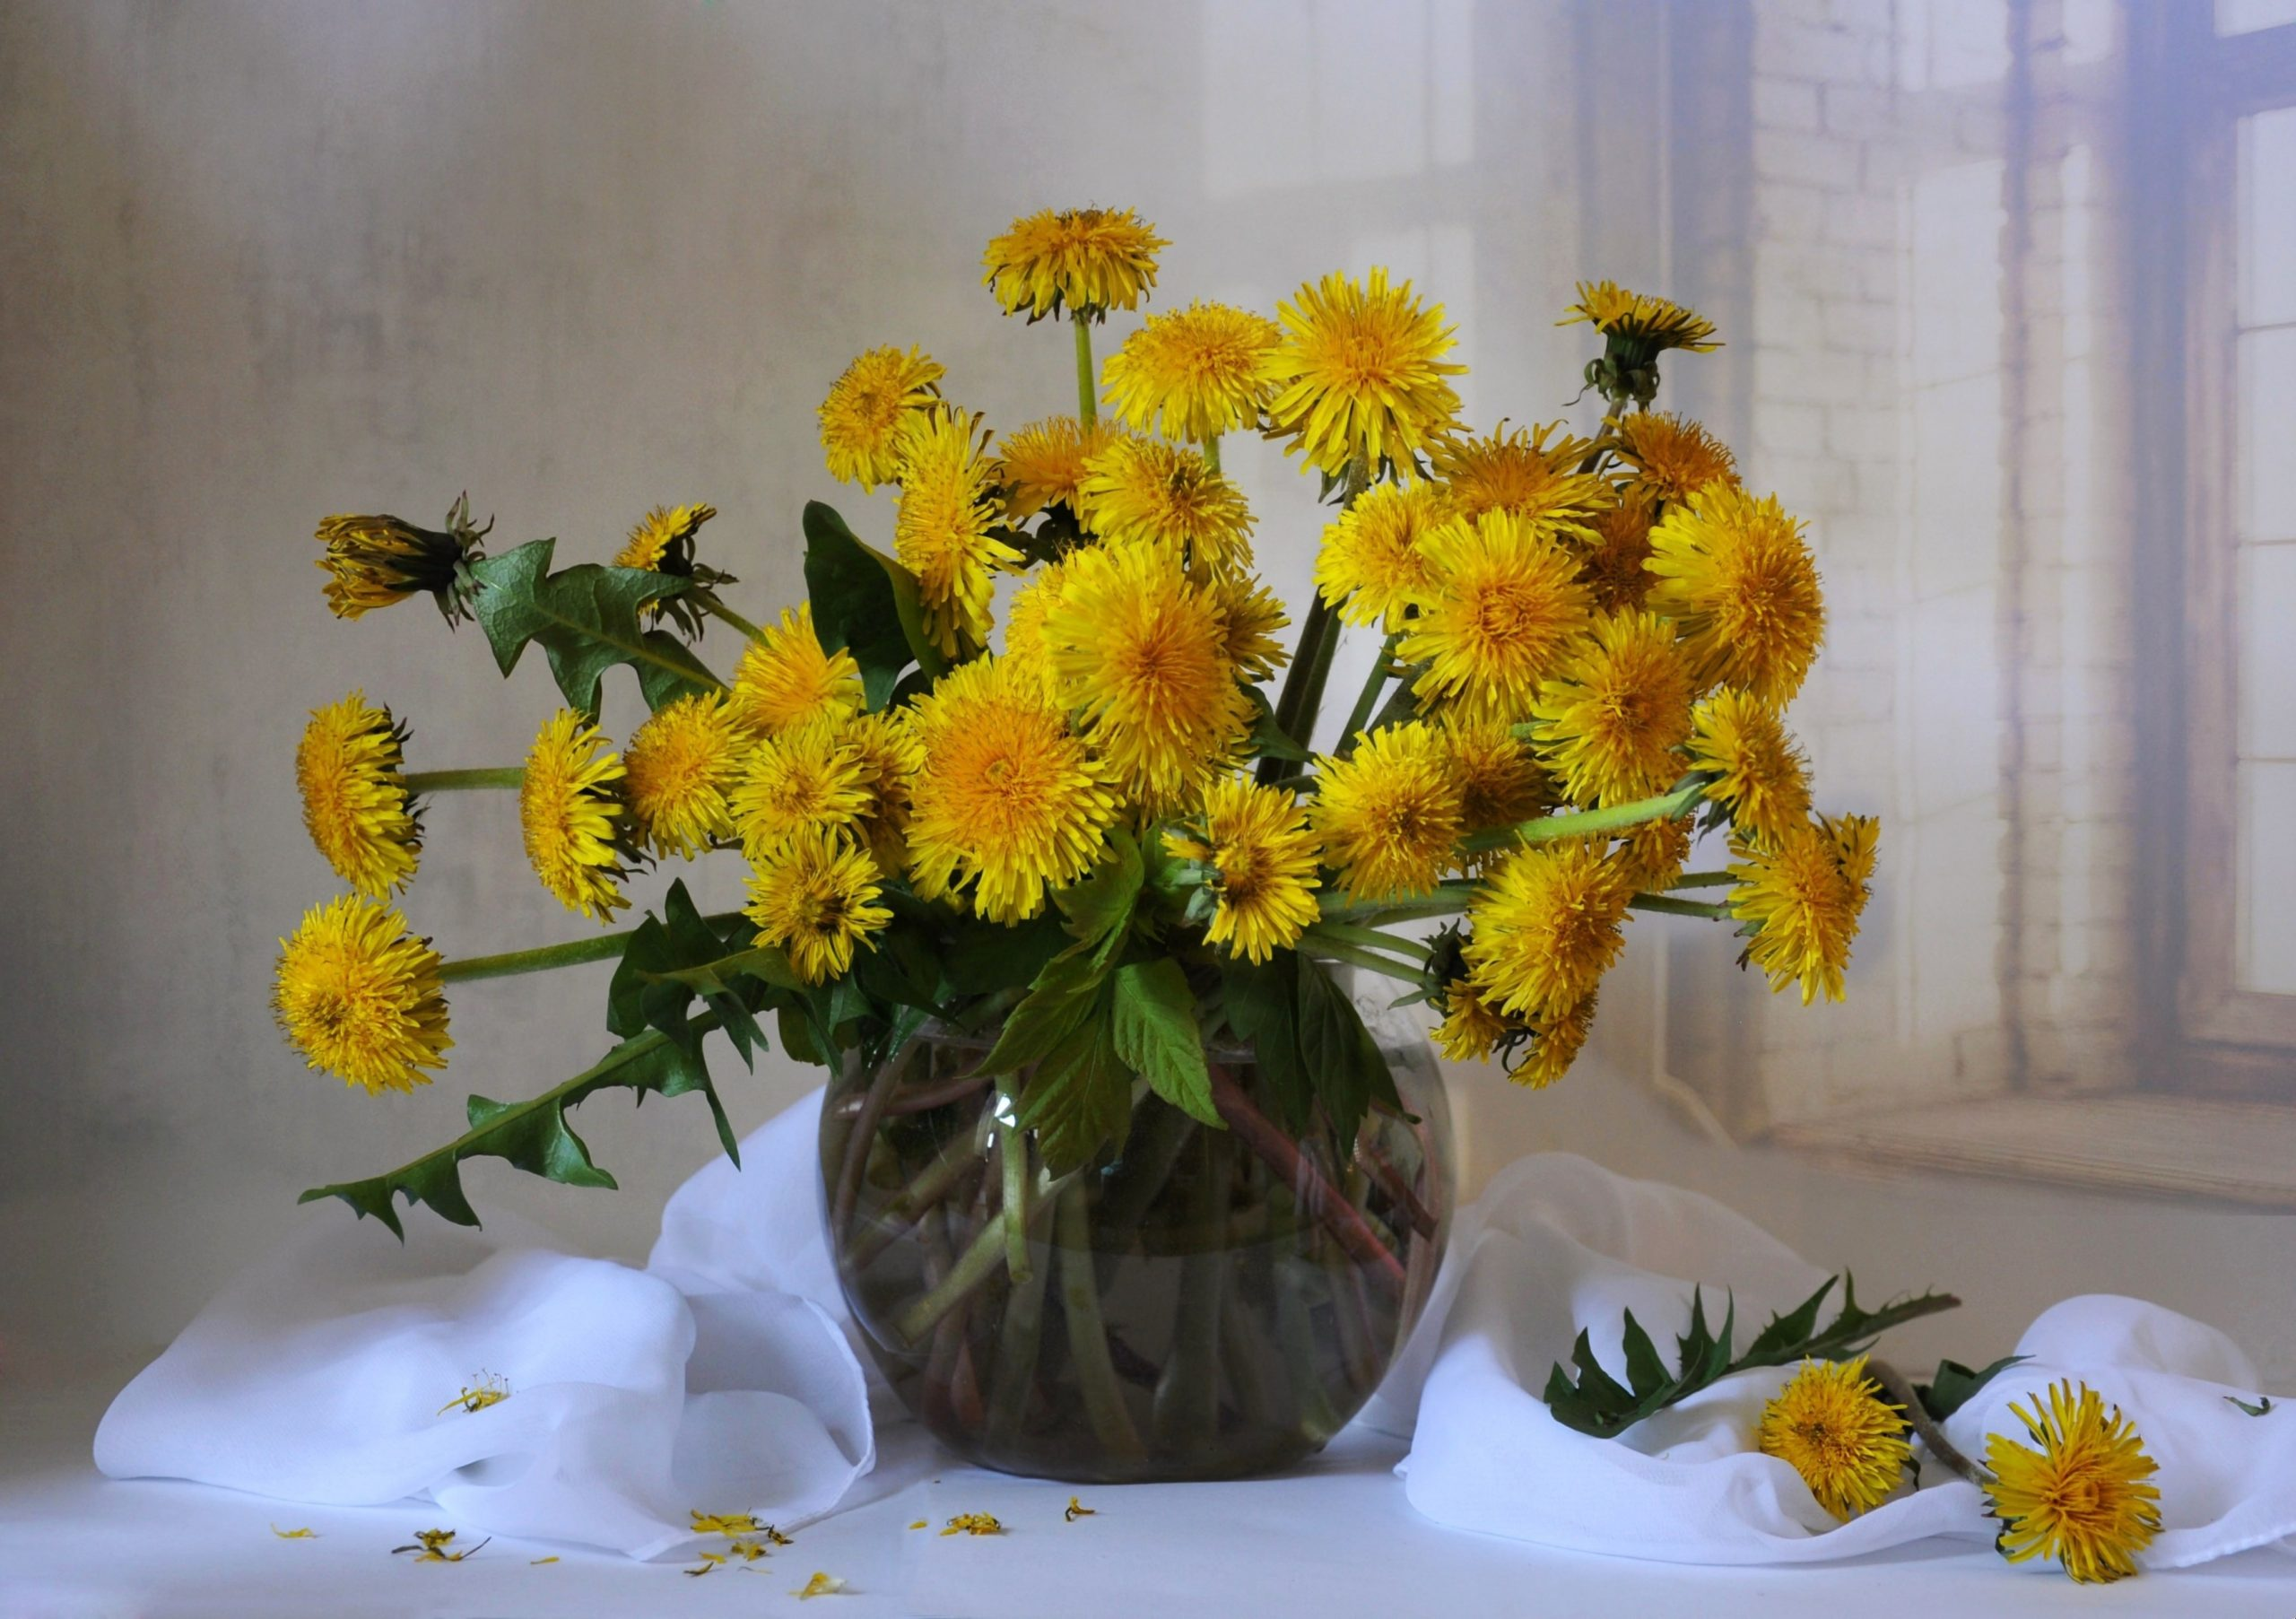 How to Make a Flower Crown with Dandelions